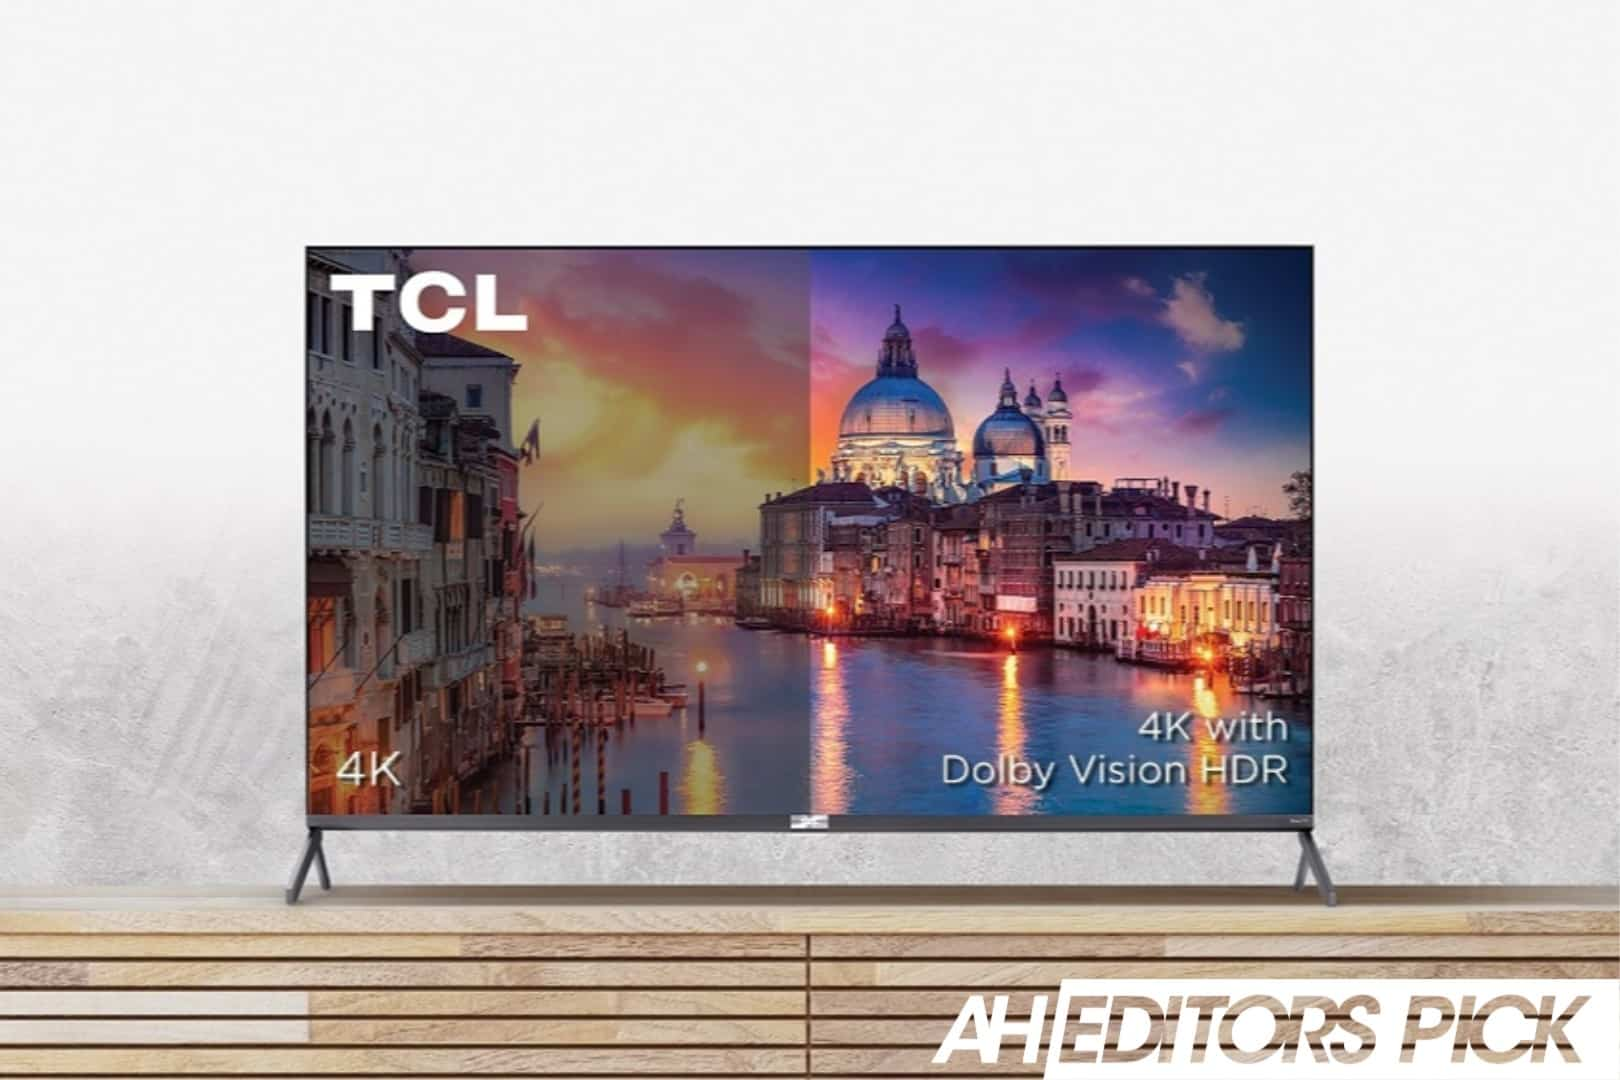 TCL 6 Series 2019 TV AH EP